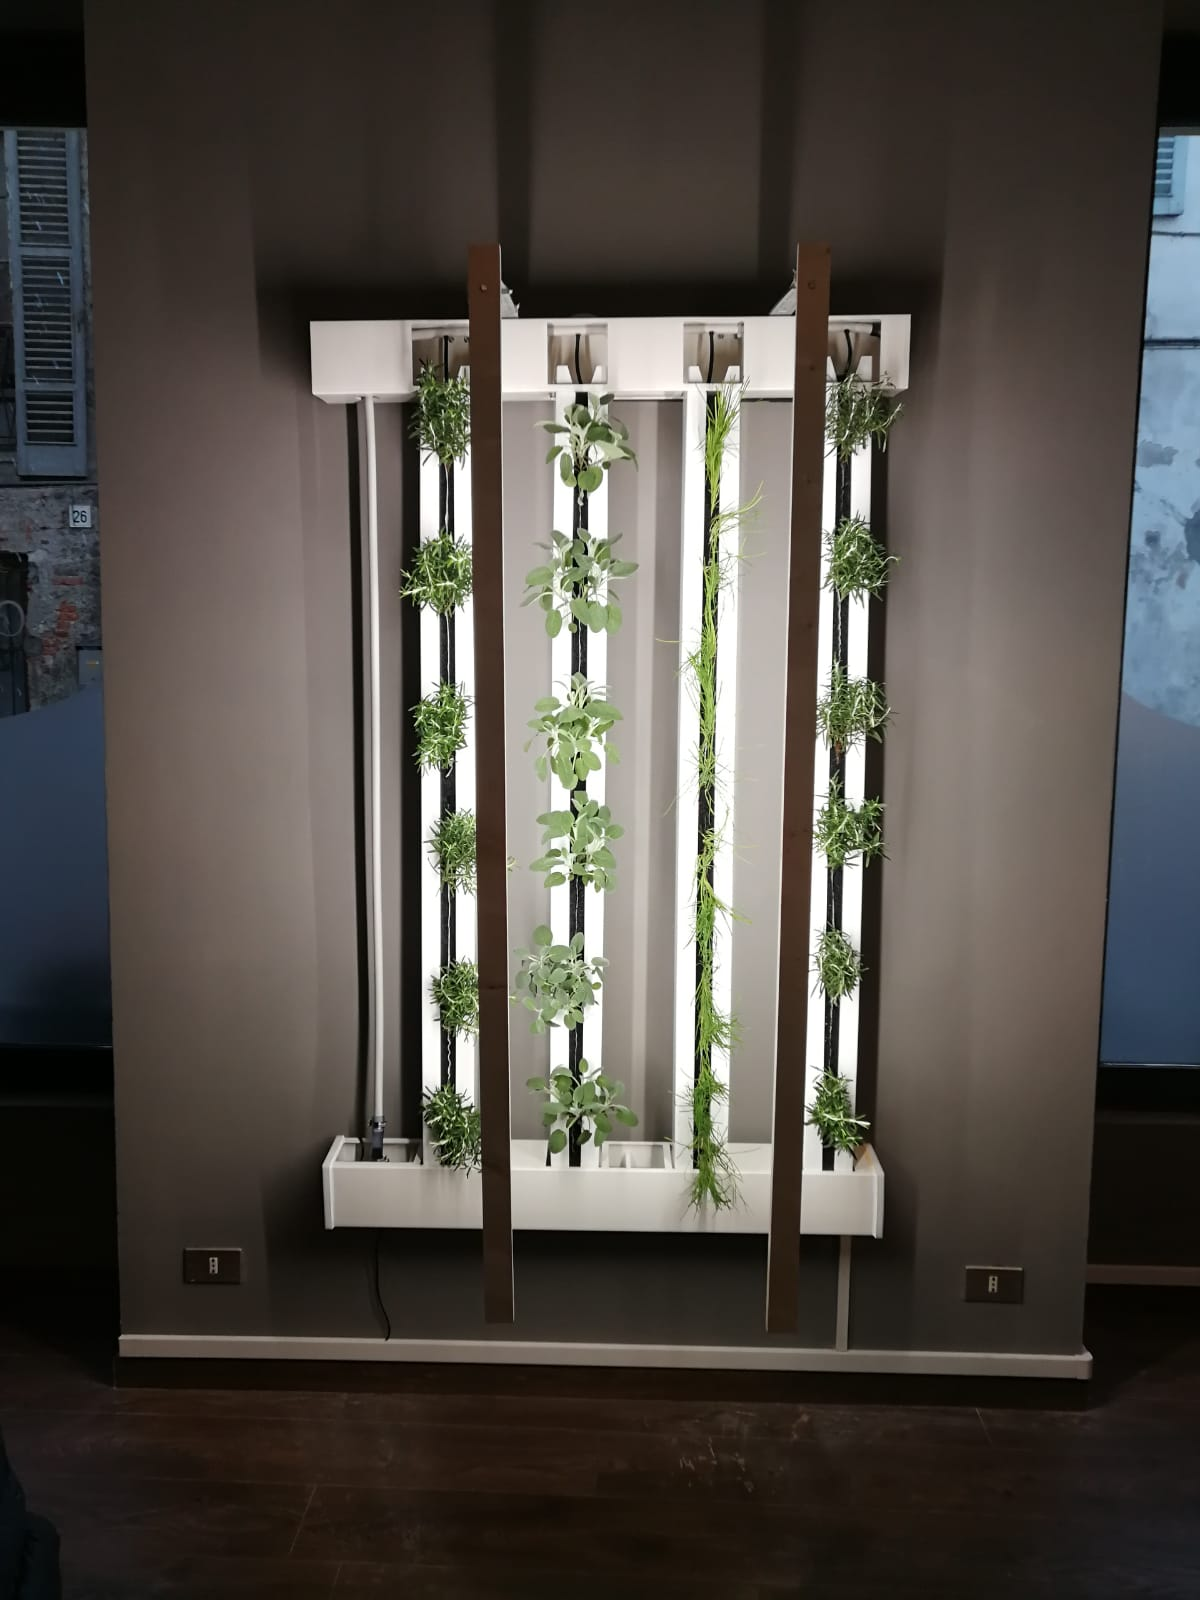 ZipGrow TM 4 Tower Farm Wall 5'